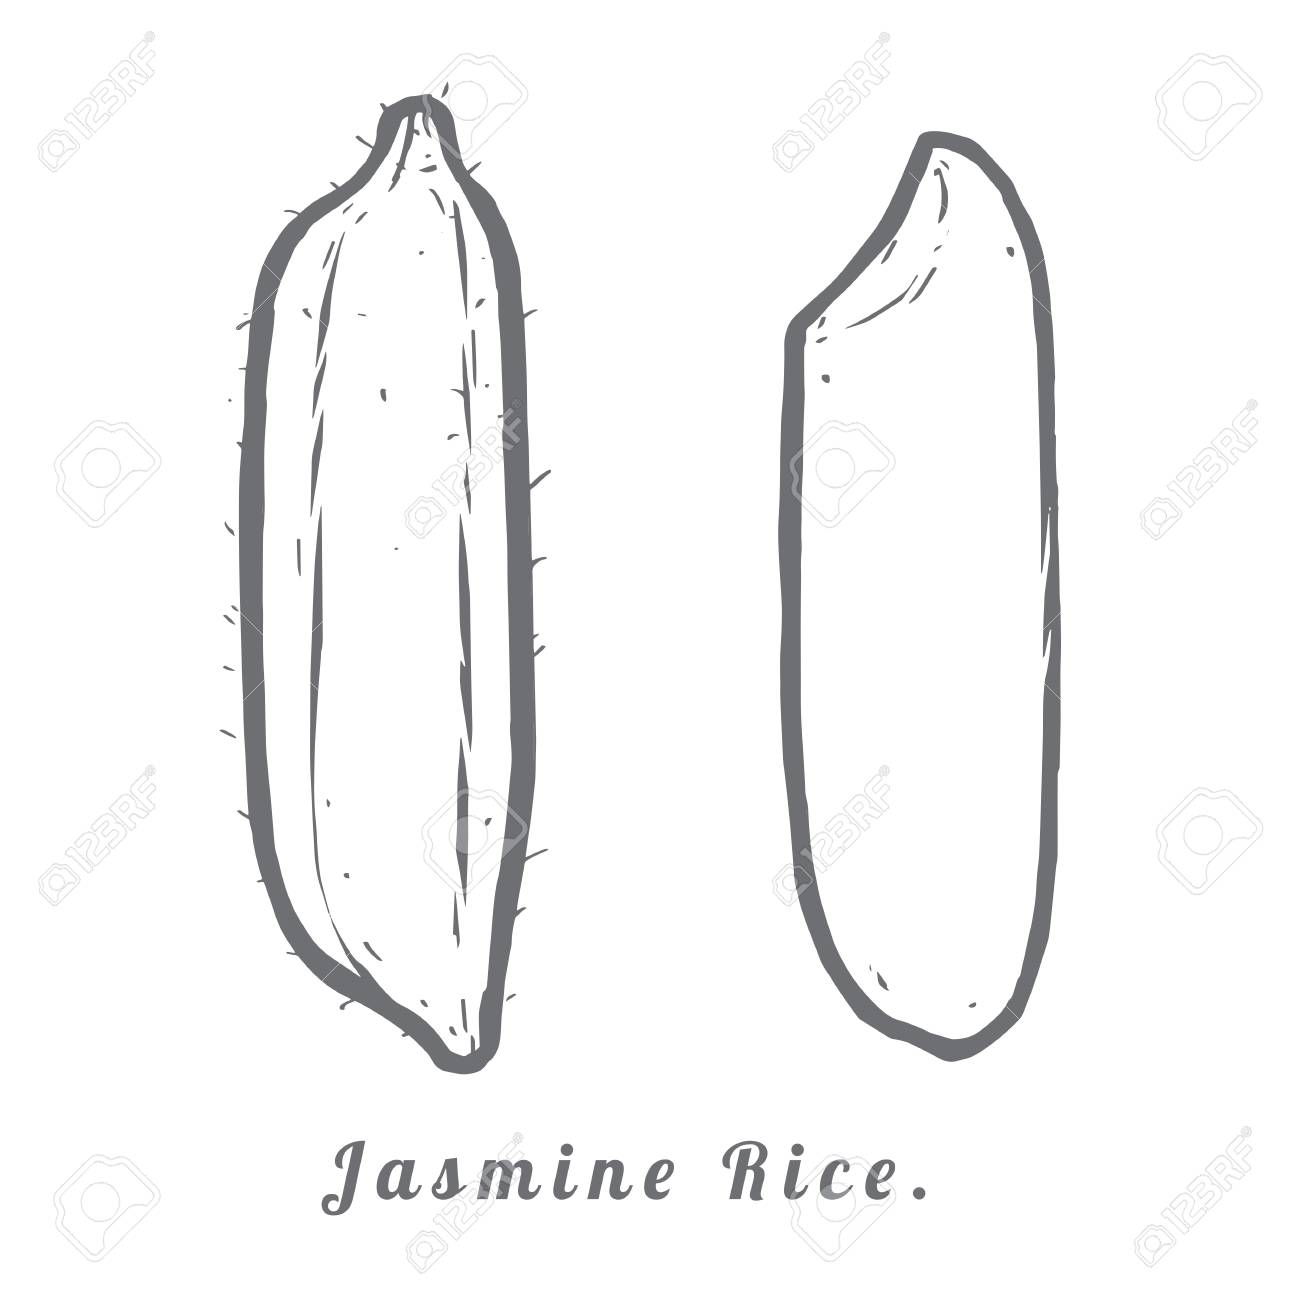 hight resolution of thailand seeds jasmine rice hull and rice macro closeup by sketch stock vector